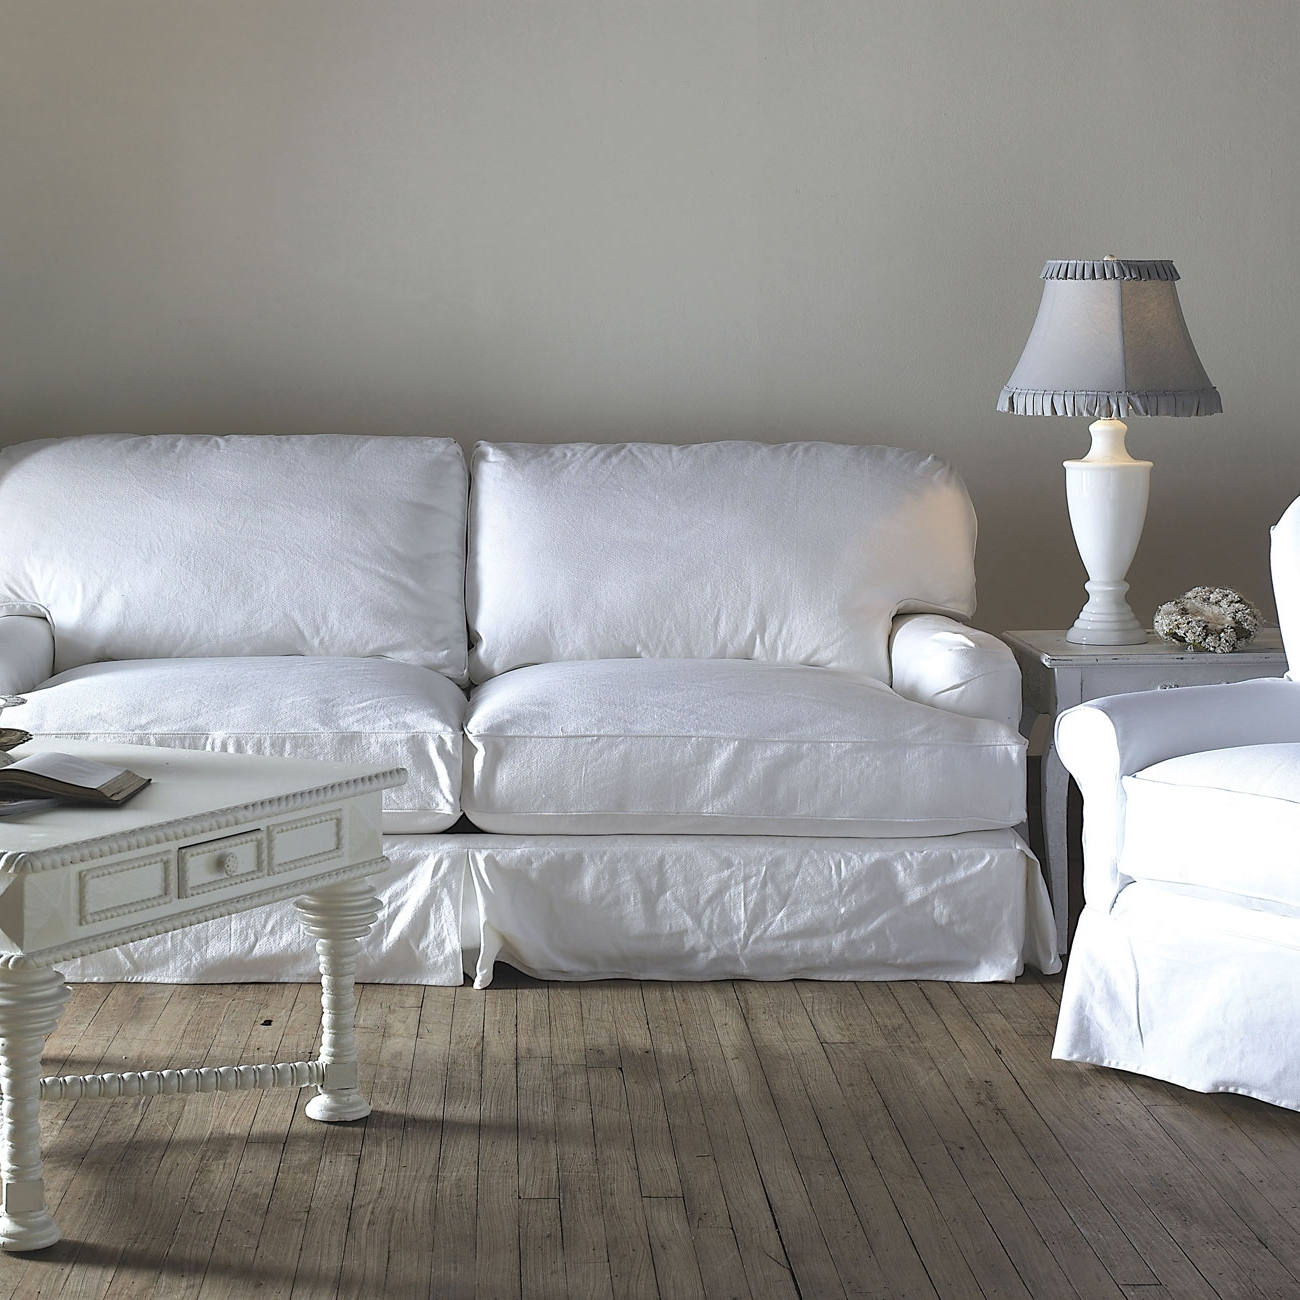 Top Home Designs With Shabby Chic Sofas (View 14 of 15)